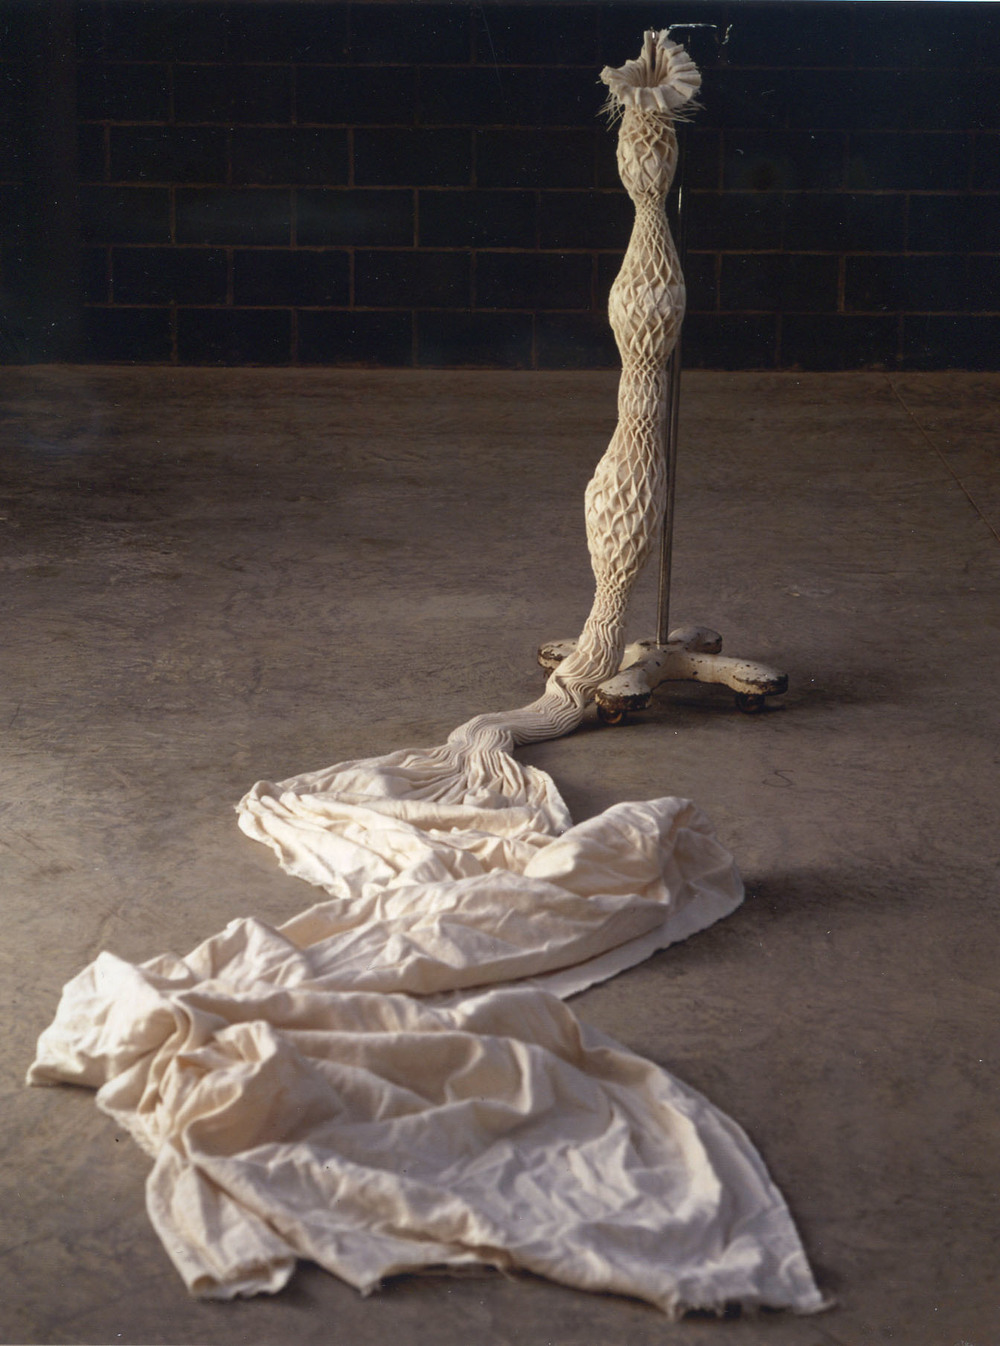 Smock, 2001, Kate MccGwire